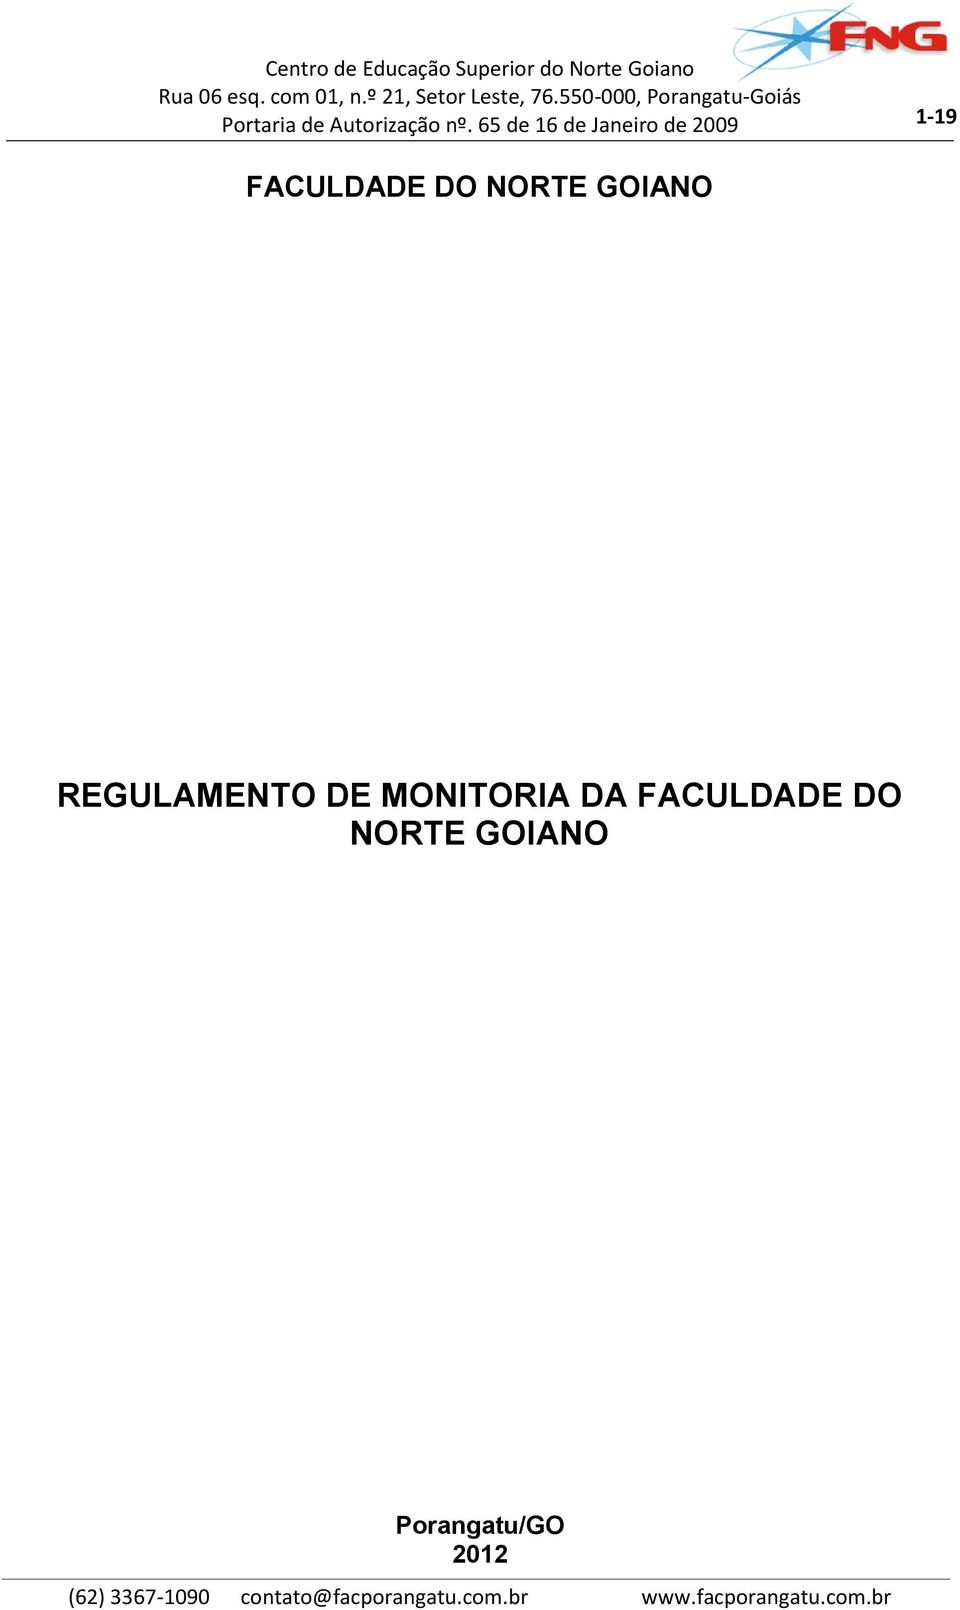 MONITORIA DA FACULDADE DO